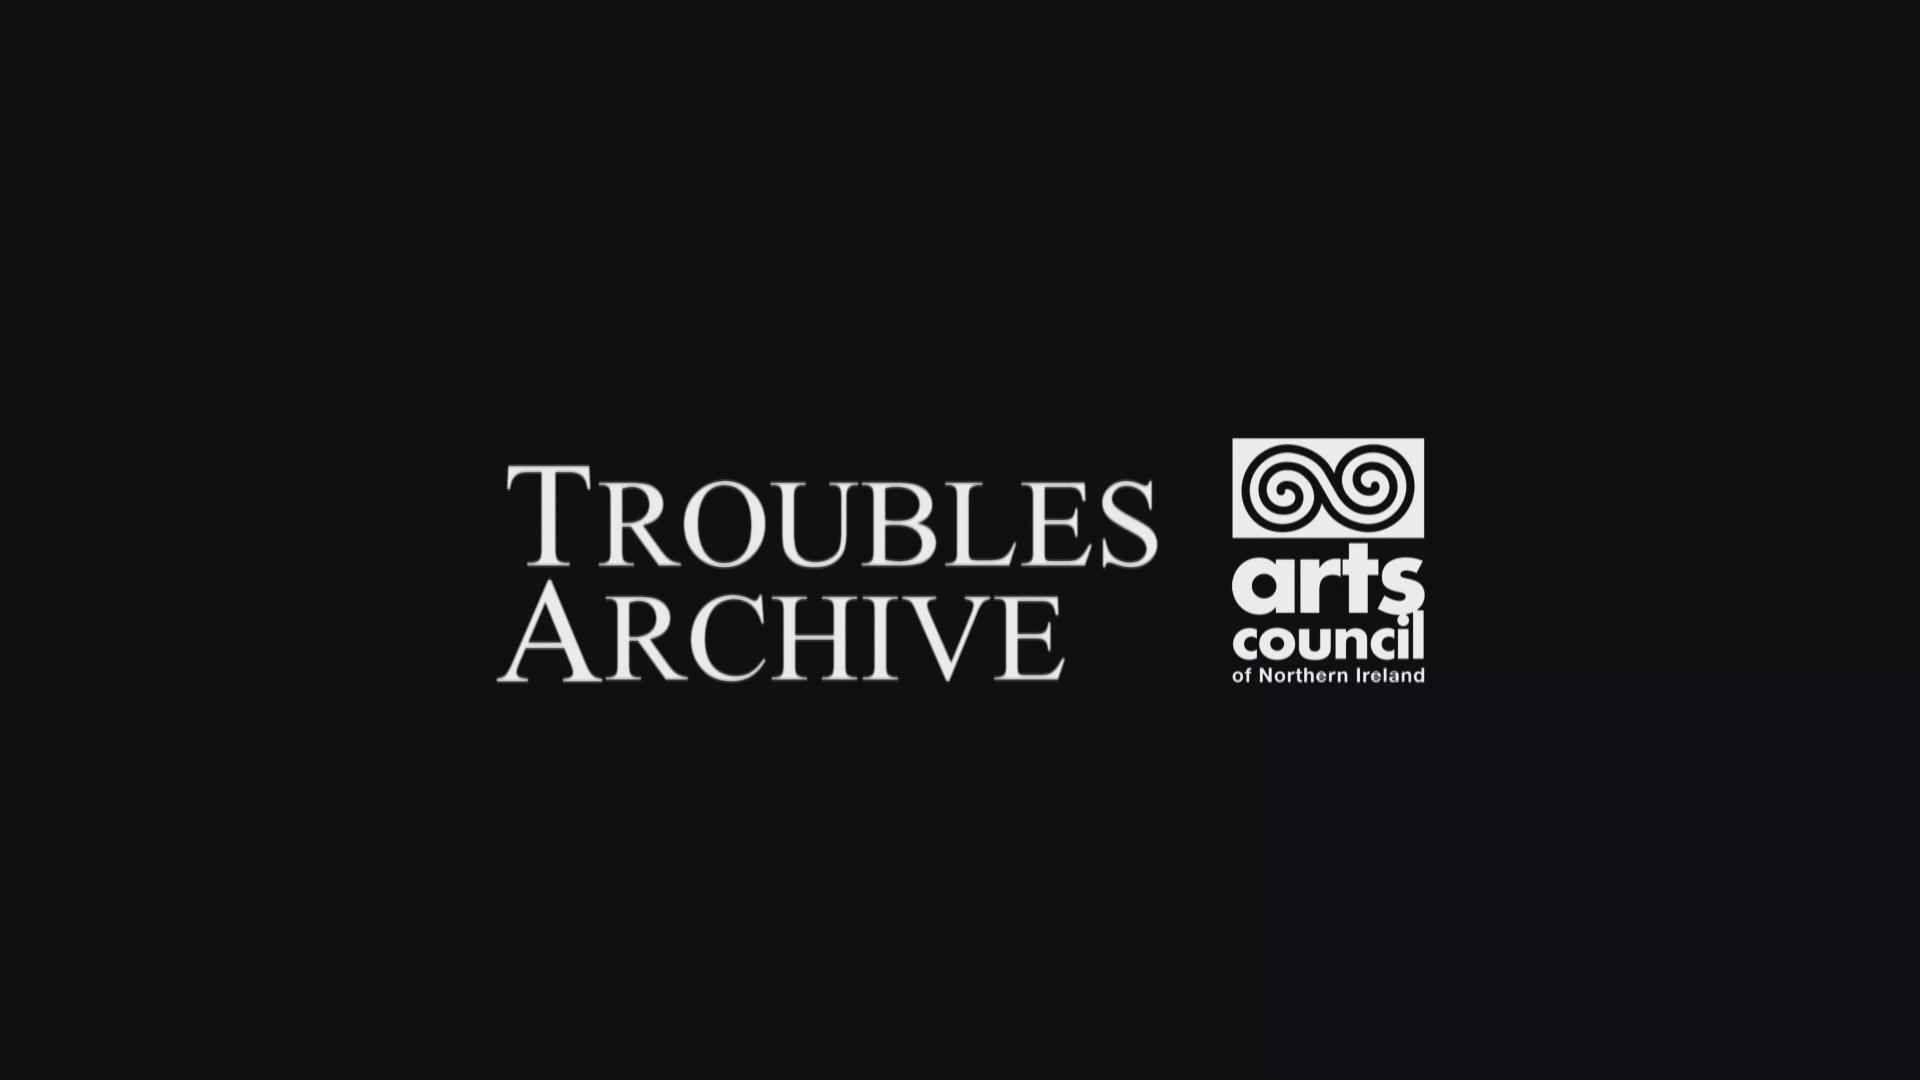 Arts Council - Troubles Archive